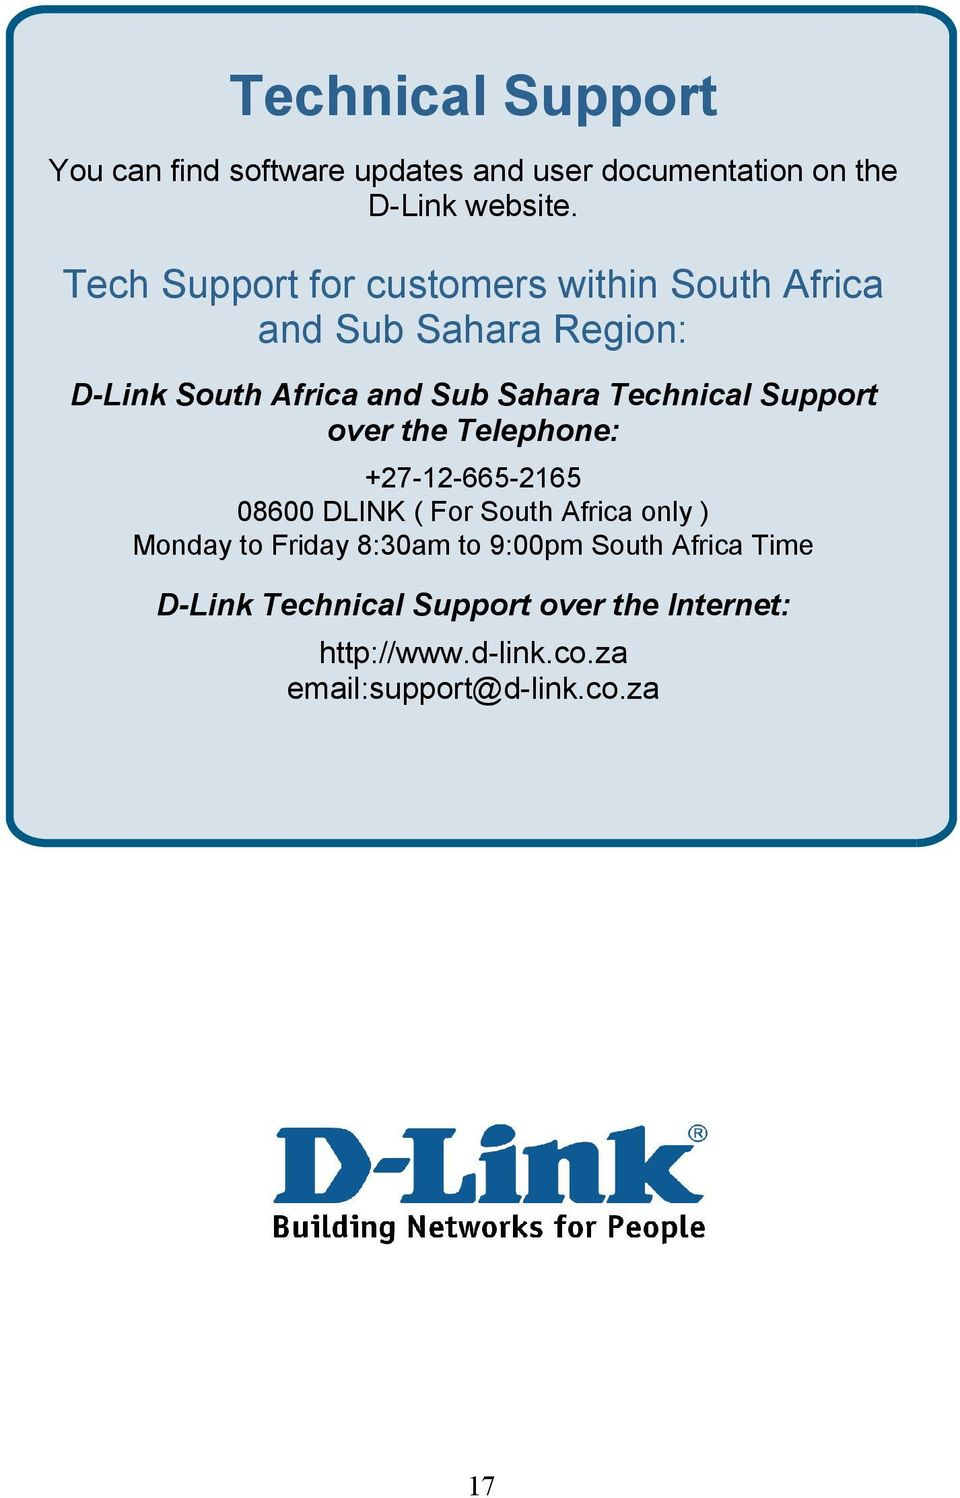 Technical Support over the Telephone: +27-12-665-2165 08600 DLINK ( For South Africa only ) Monday to Friday